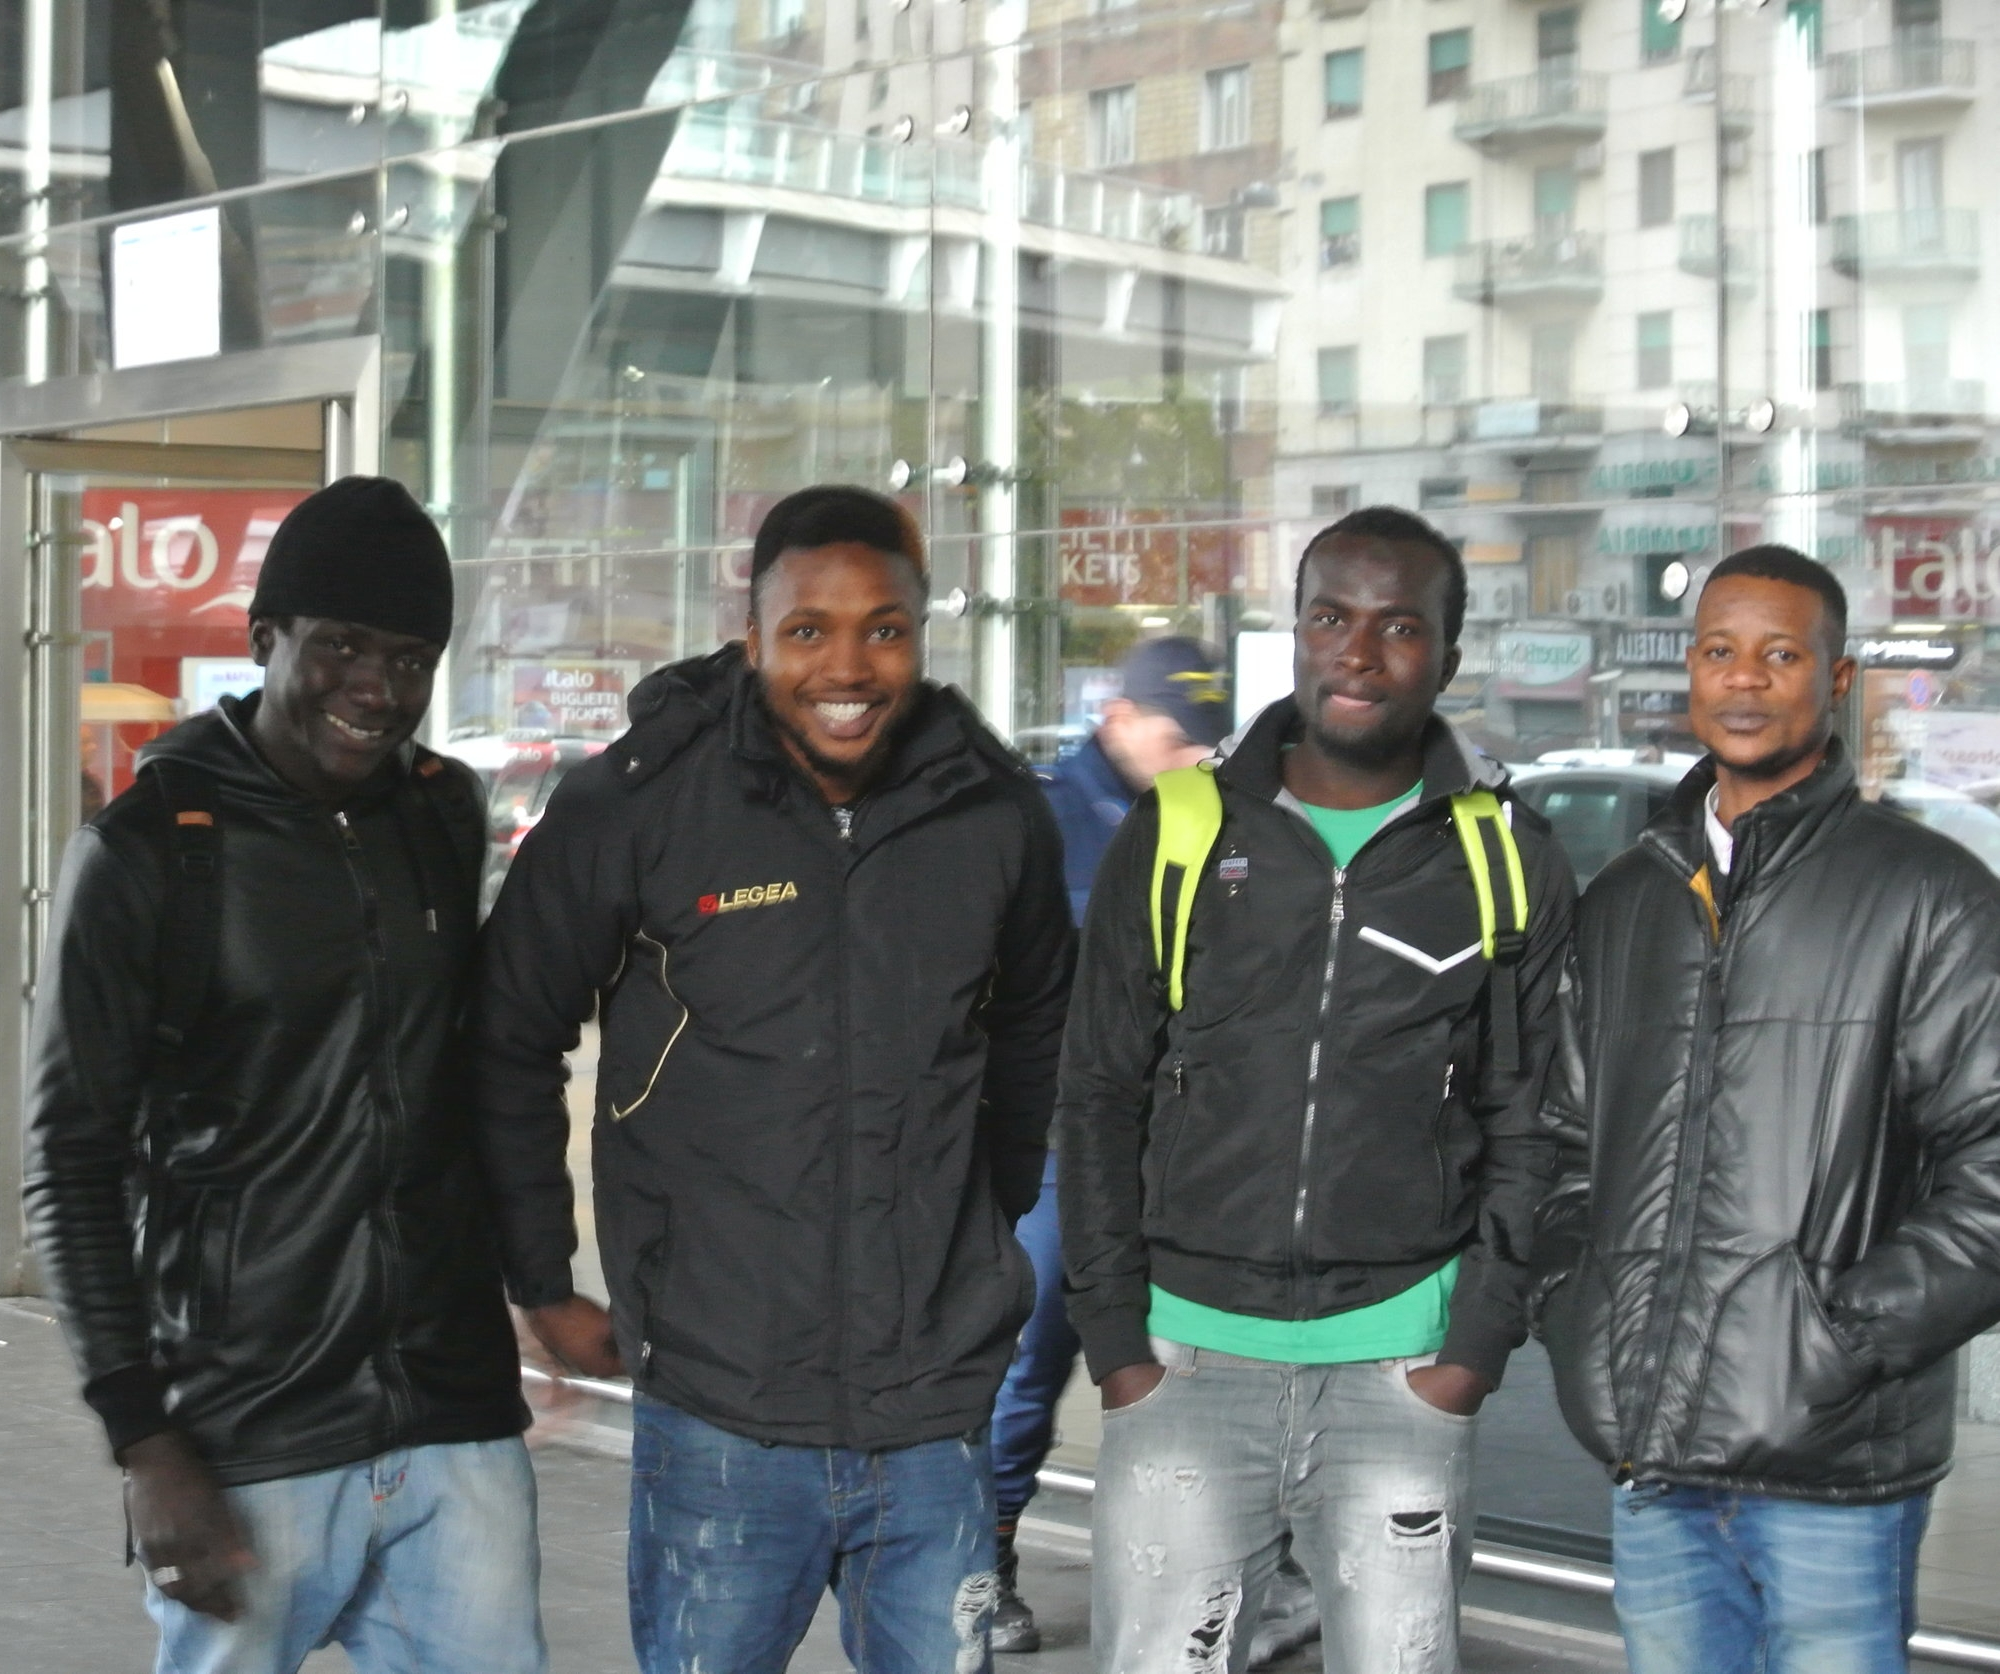 Left to right: Jamilu (20, Gambia),  Fabulous  (25, Nigeria), David,  Emmanuel  (21, Nigeria), at  Napoli Centrale  railway station. November 2017.